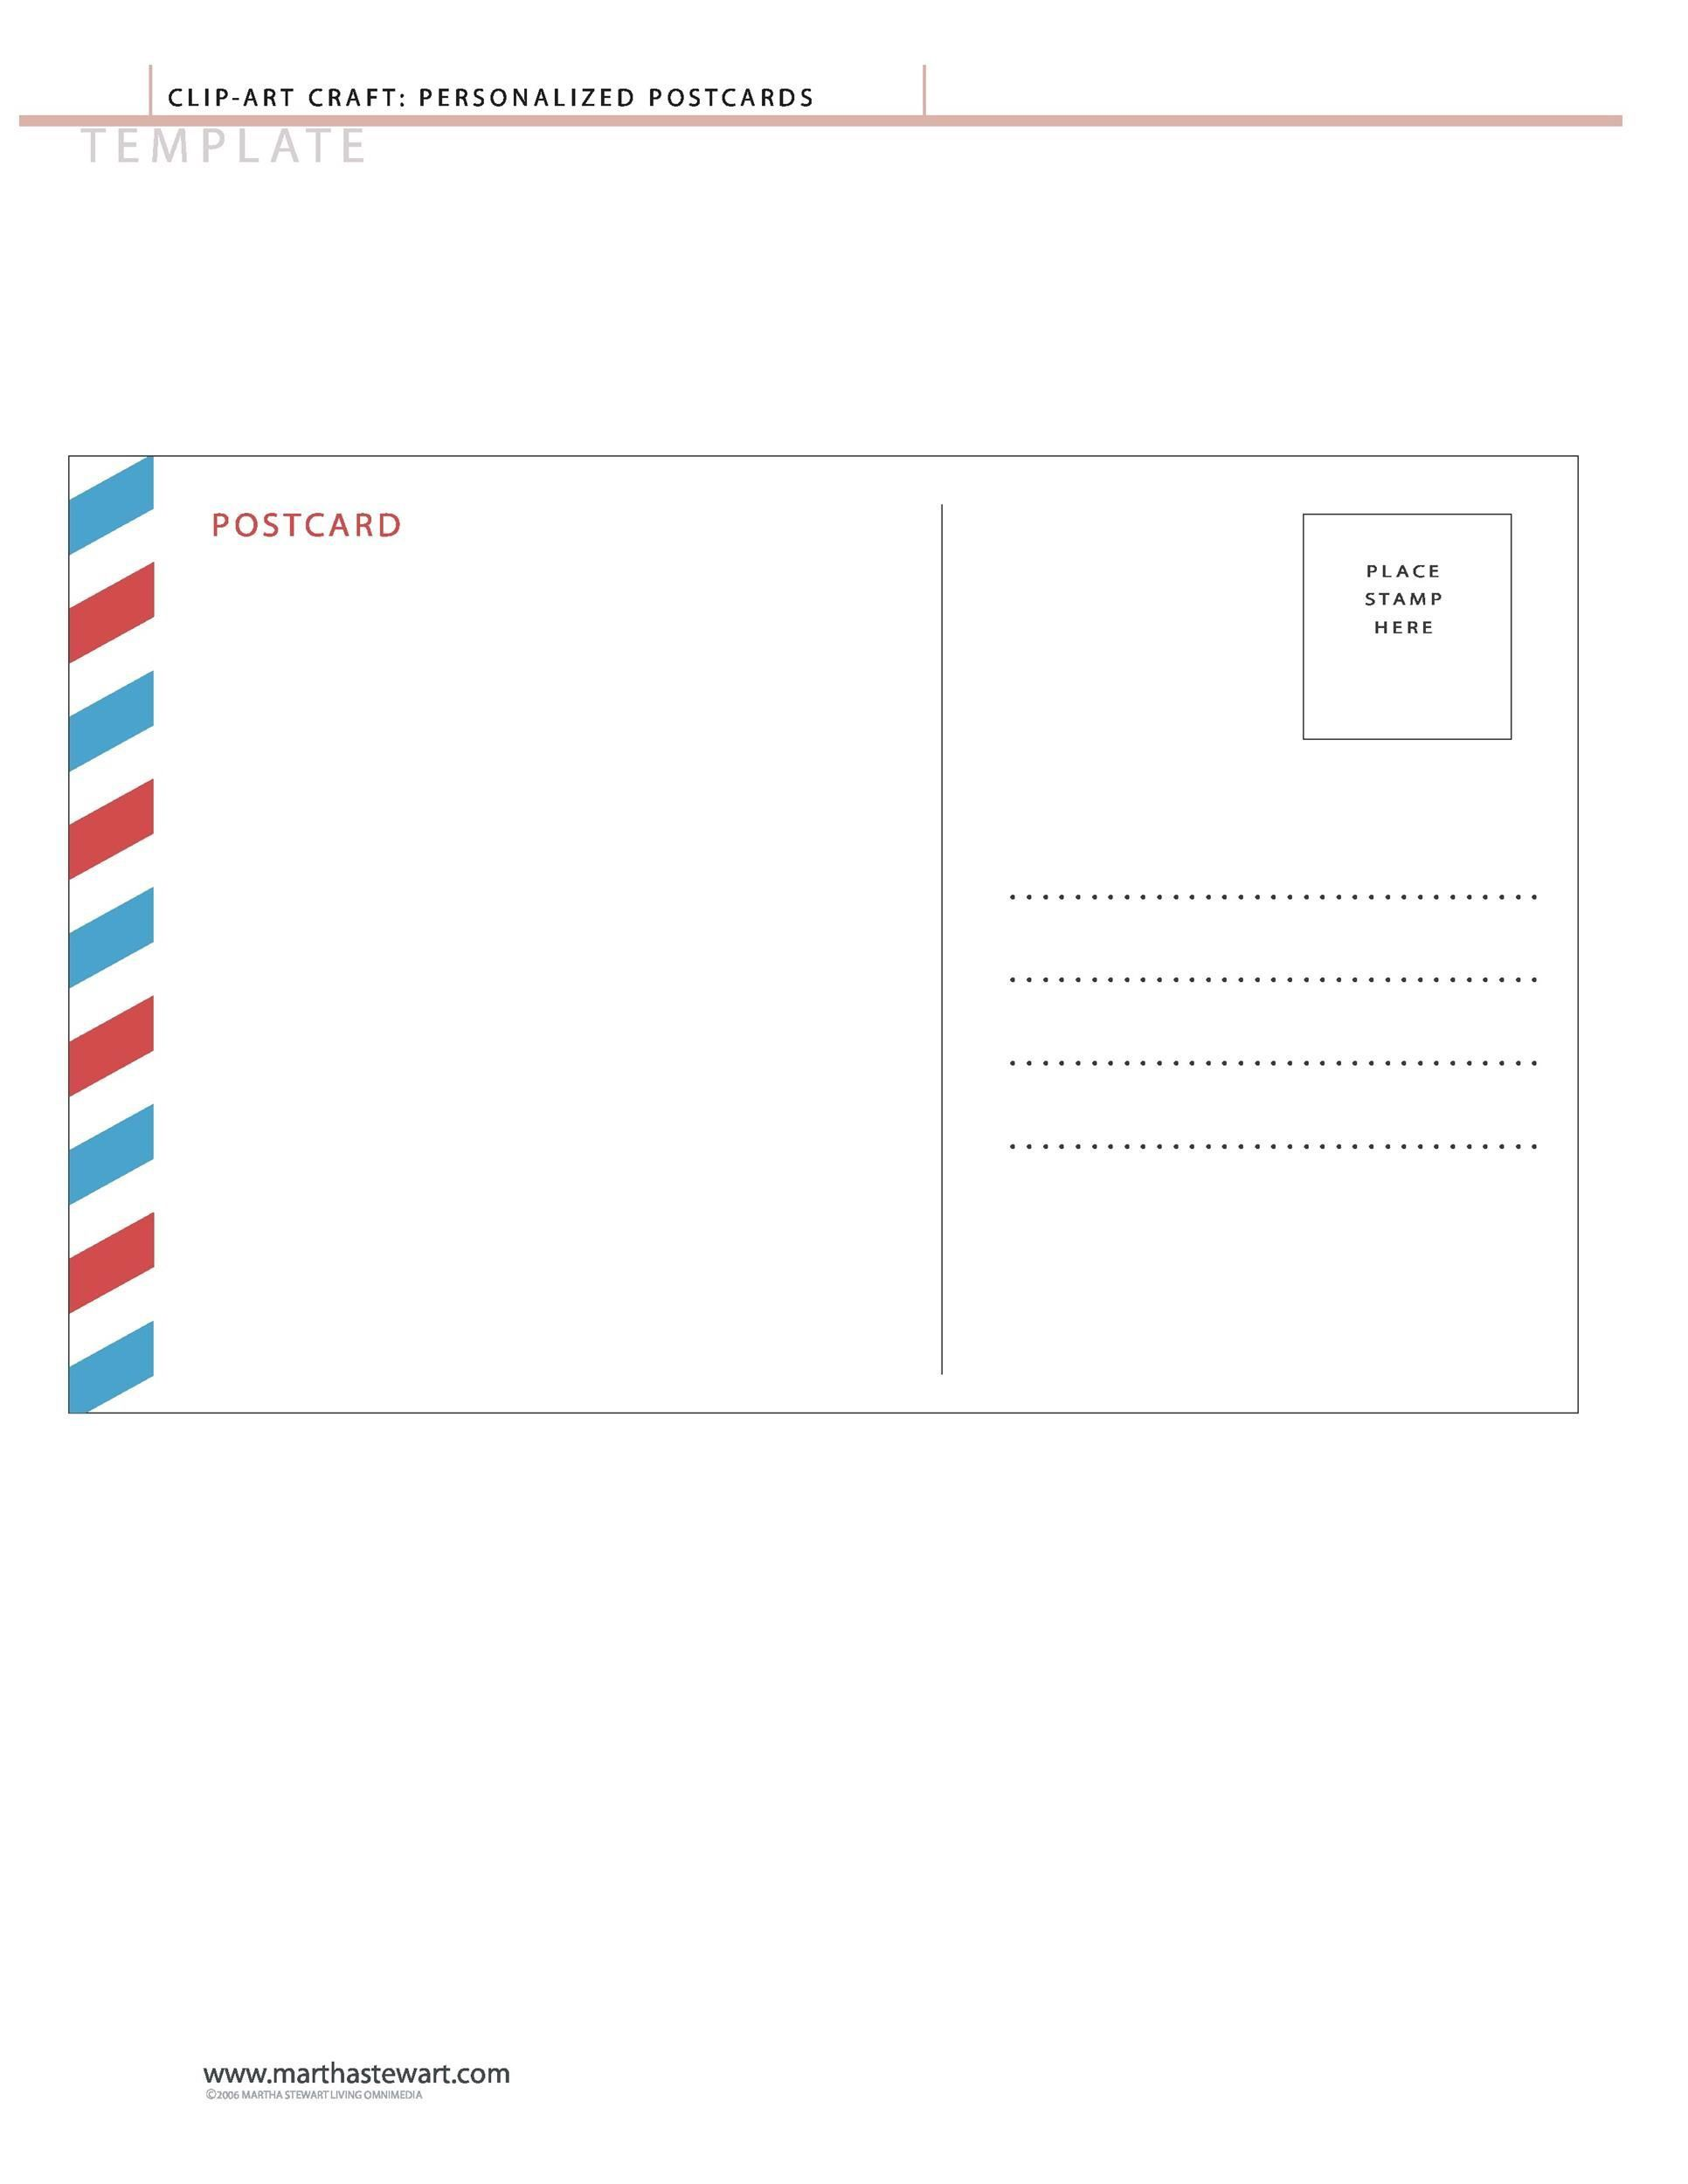 004 Marvelou Free Postcard Template Download Microsoft Word Concept Full